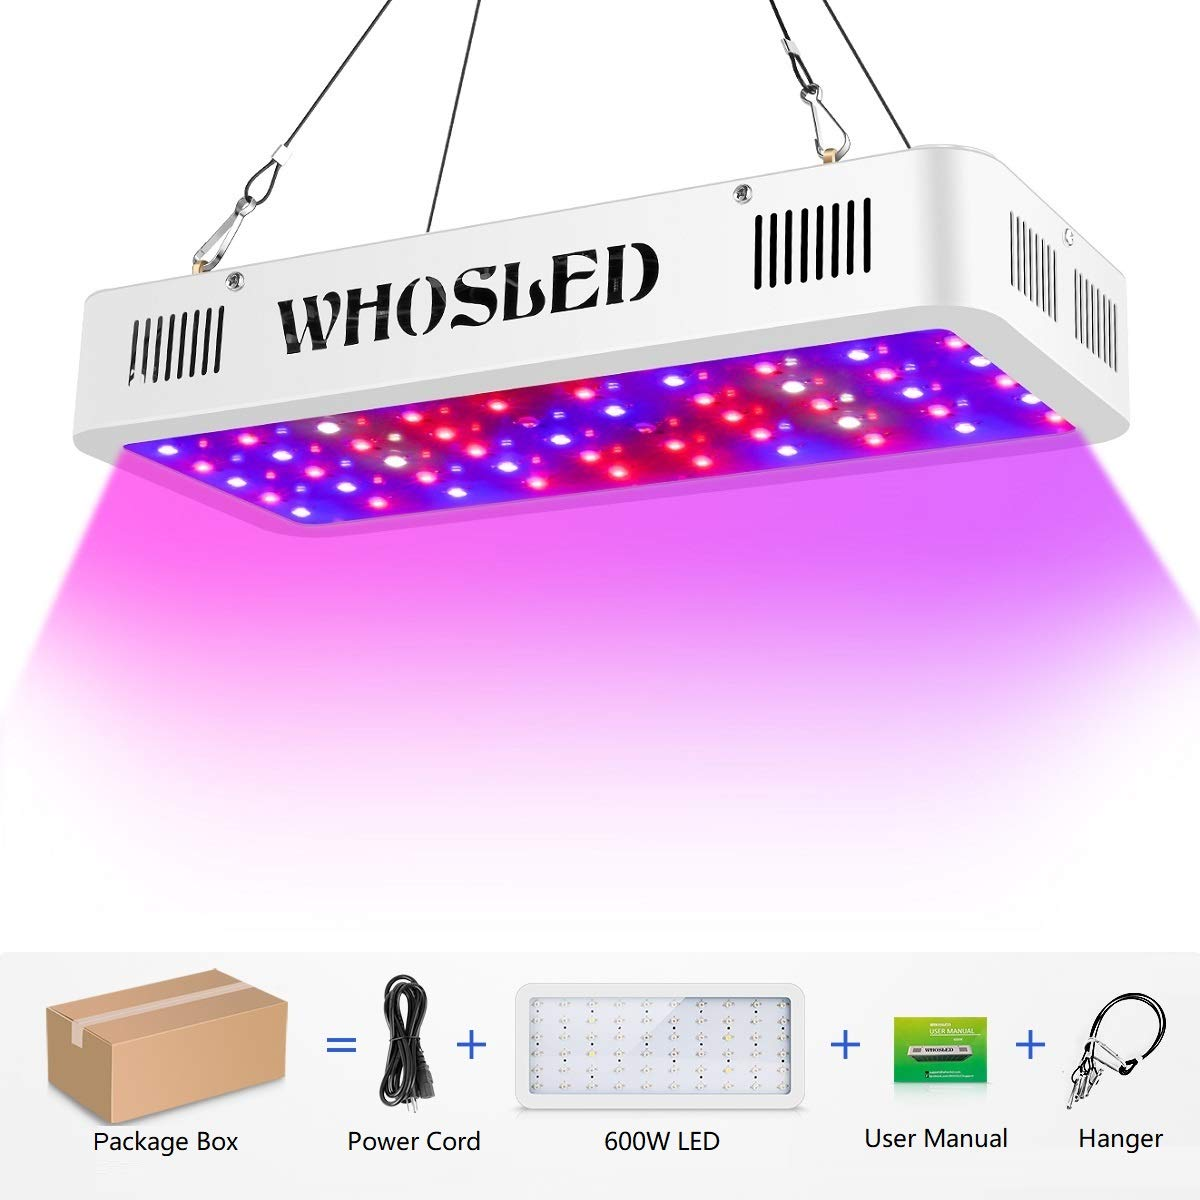 WHOSLED 600W LED Grow Light Full Spectrum Purely Handmade Grow Lamp with IR and UV for Hydroponic Indoor Plants Veg and Flower